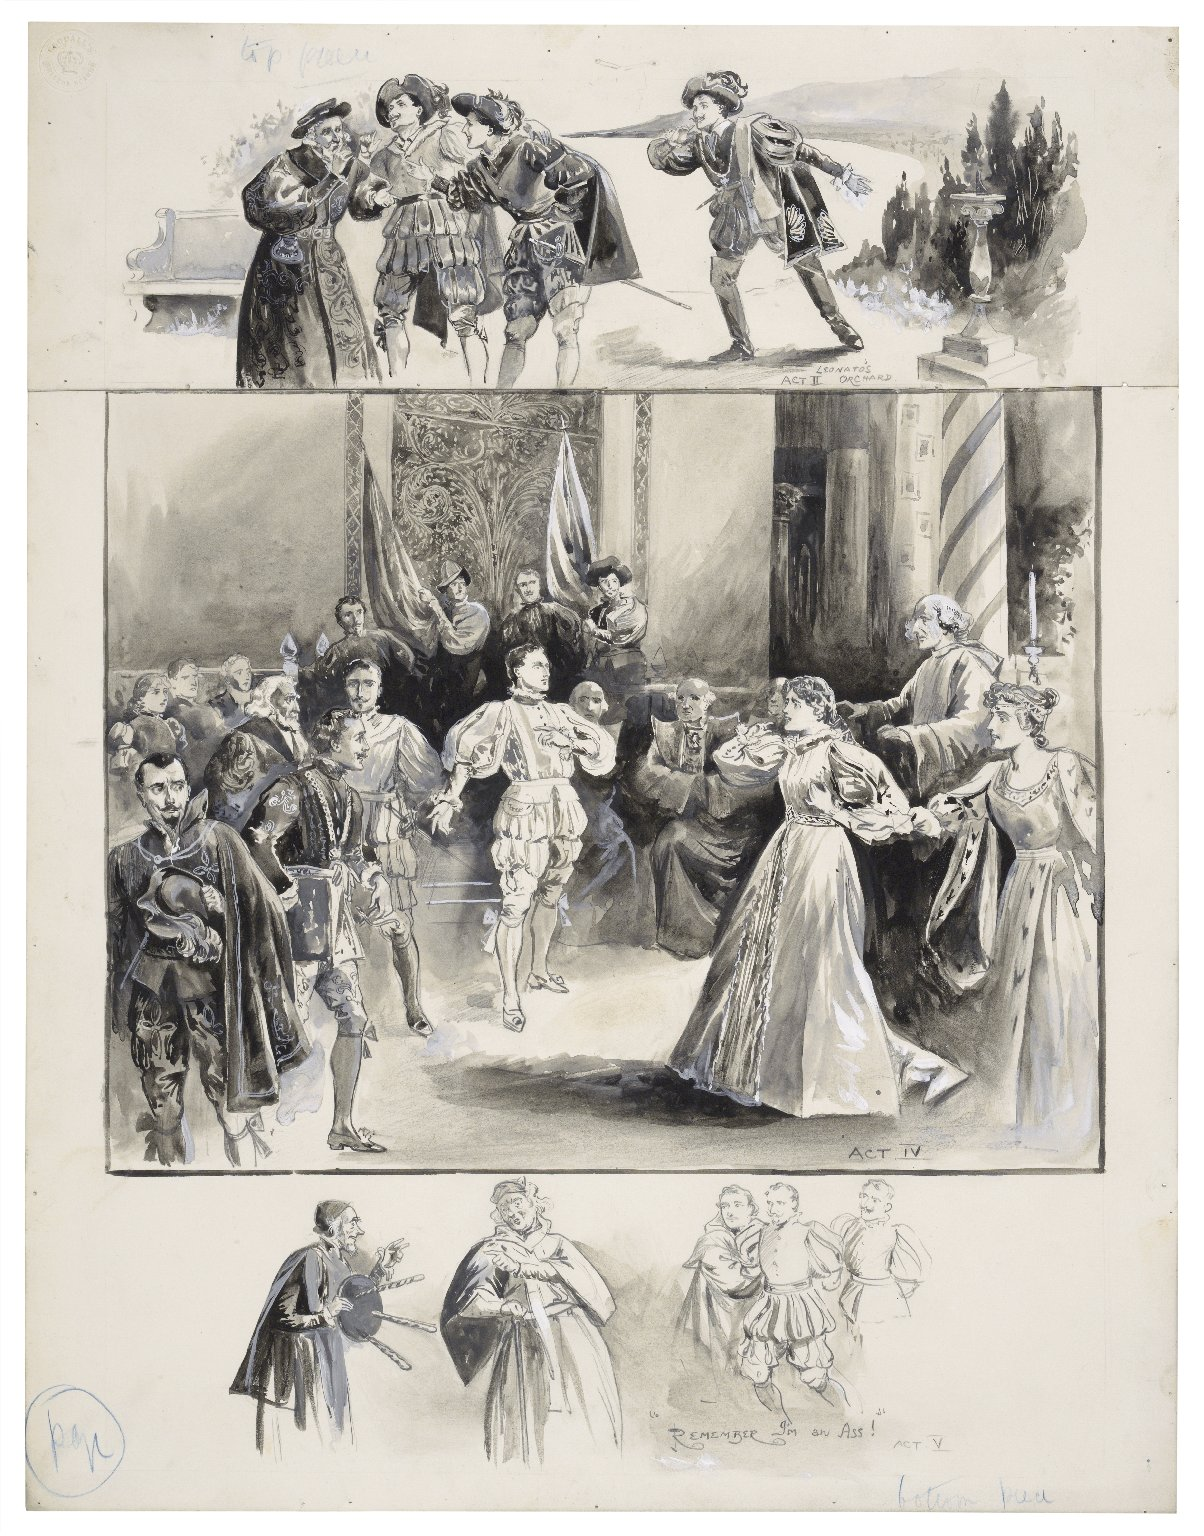 "[Shakespeare's Much ado about nothing at the St. James theatre, 3 scenes reading from top to bottom: 1. Act II - Leonato's Orchard, 2. Act IV, 3. Act V - ""Remember I'm an ass!""] [graphic] / [John Jellicoe]."